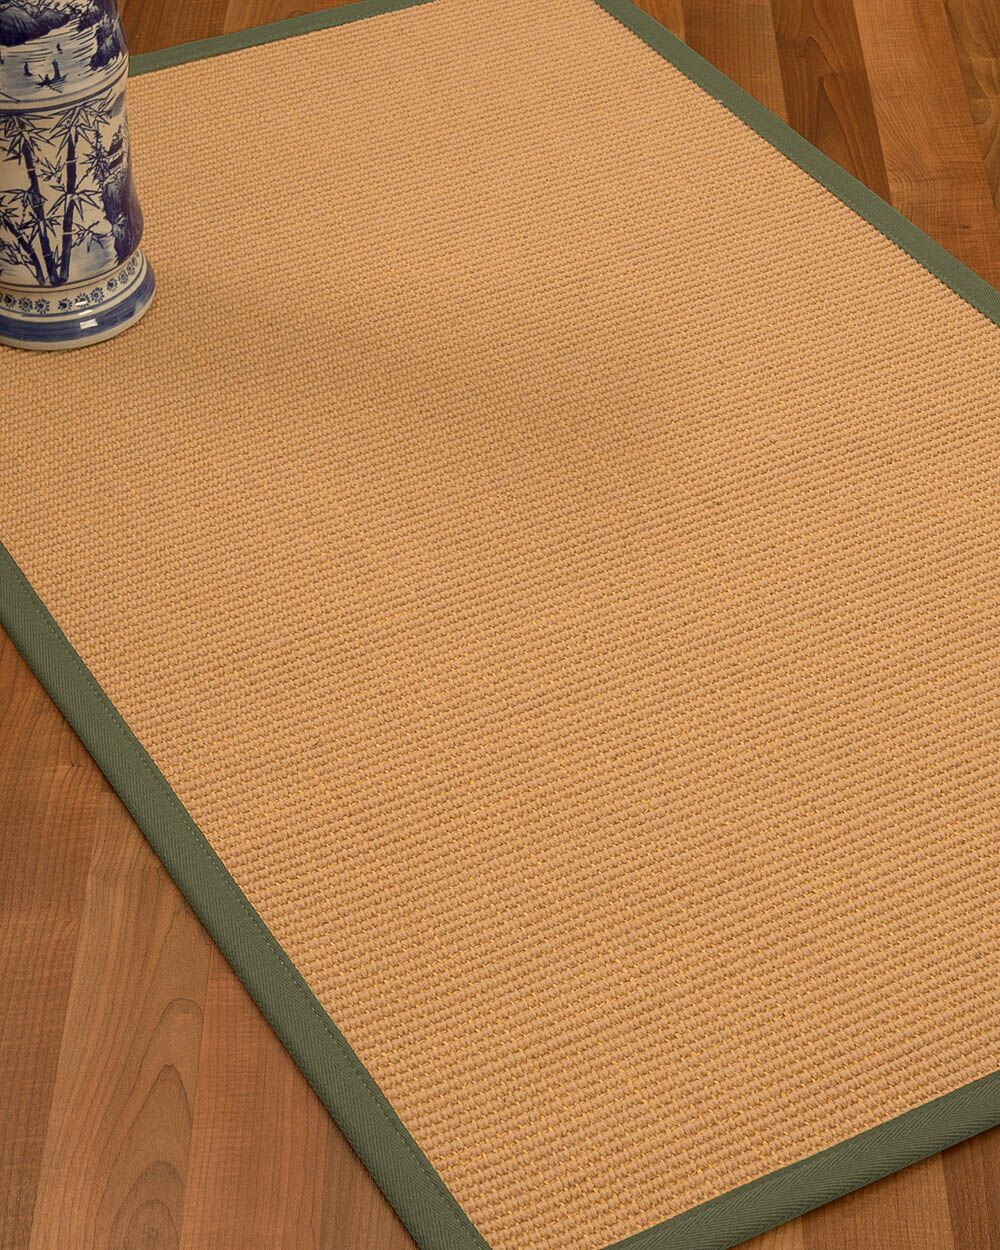 Lafayette Border Hand-Woven Wool Beige/Fossil Area Rug Rug Size: Rectangle 4' x 6', Rug Pad Included: Yes